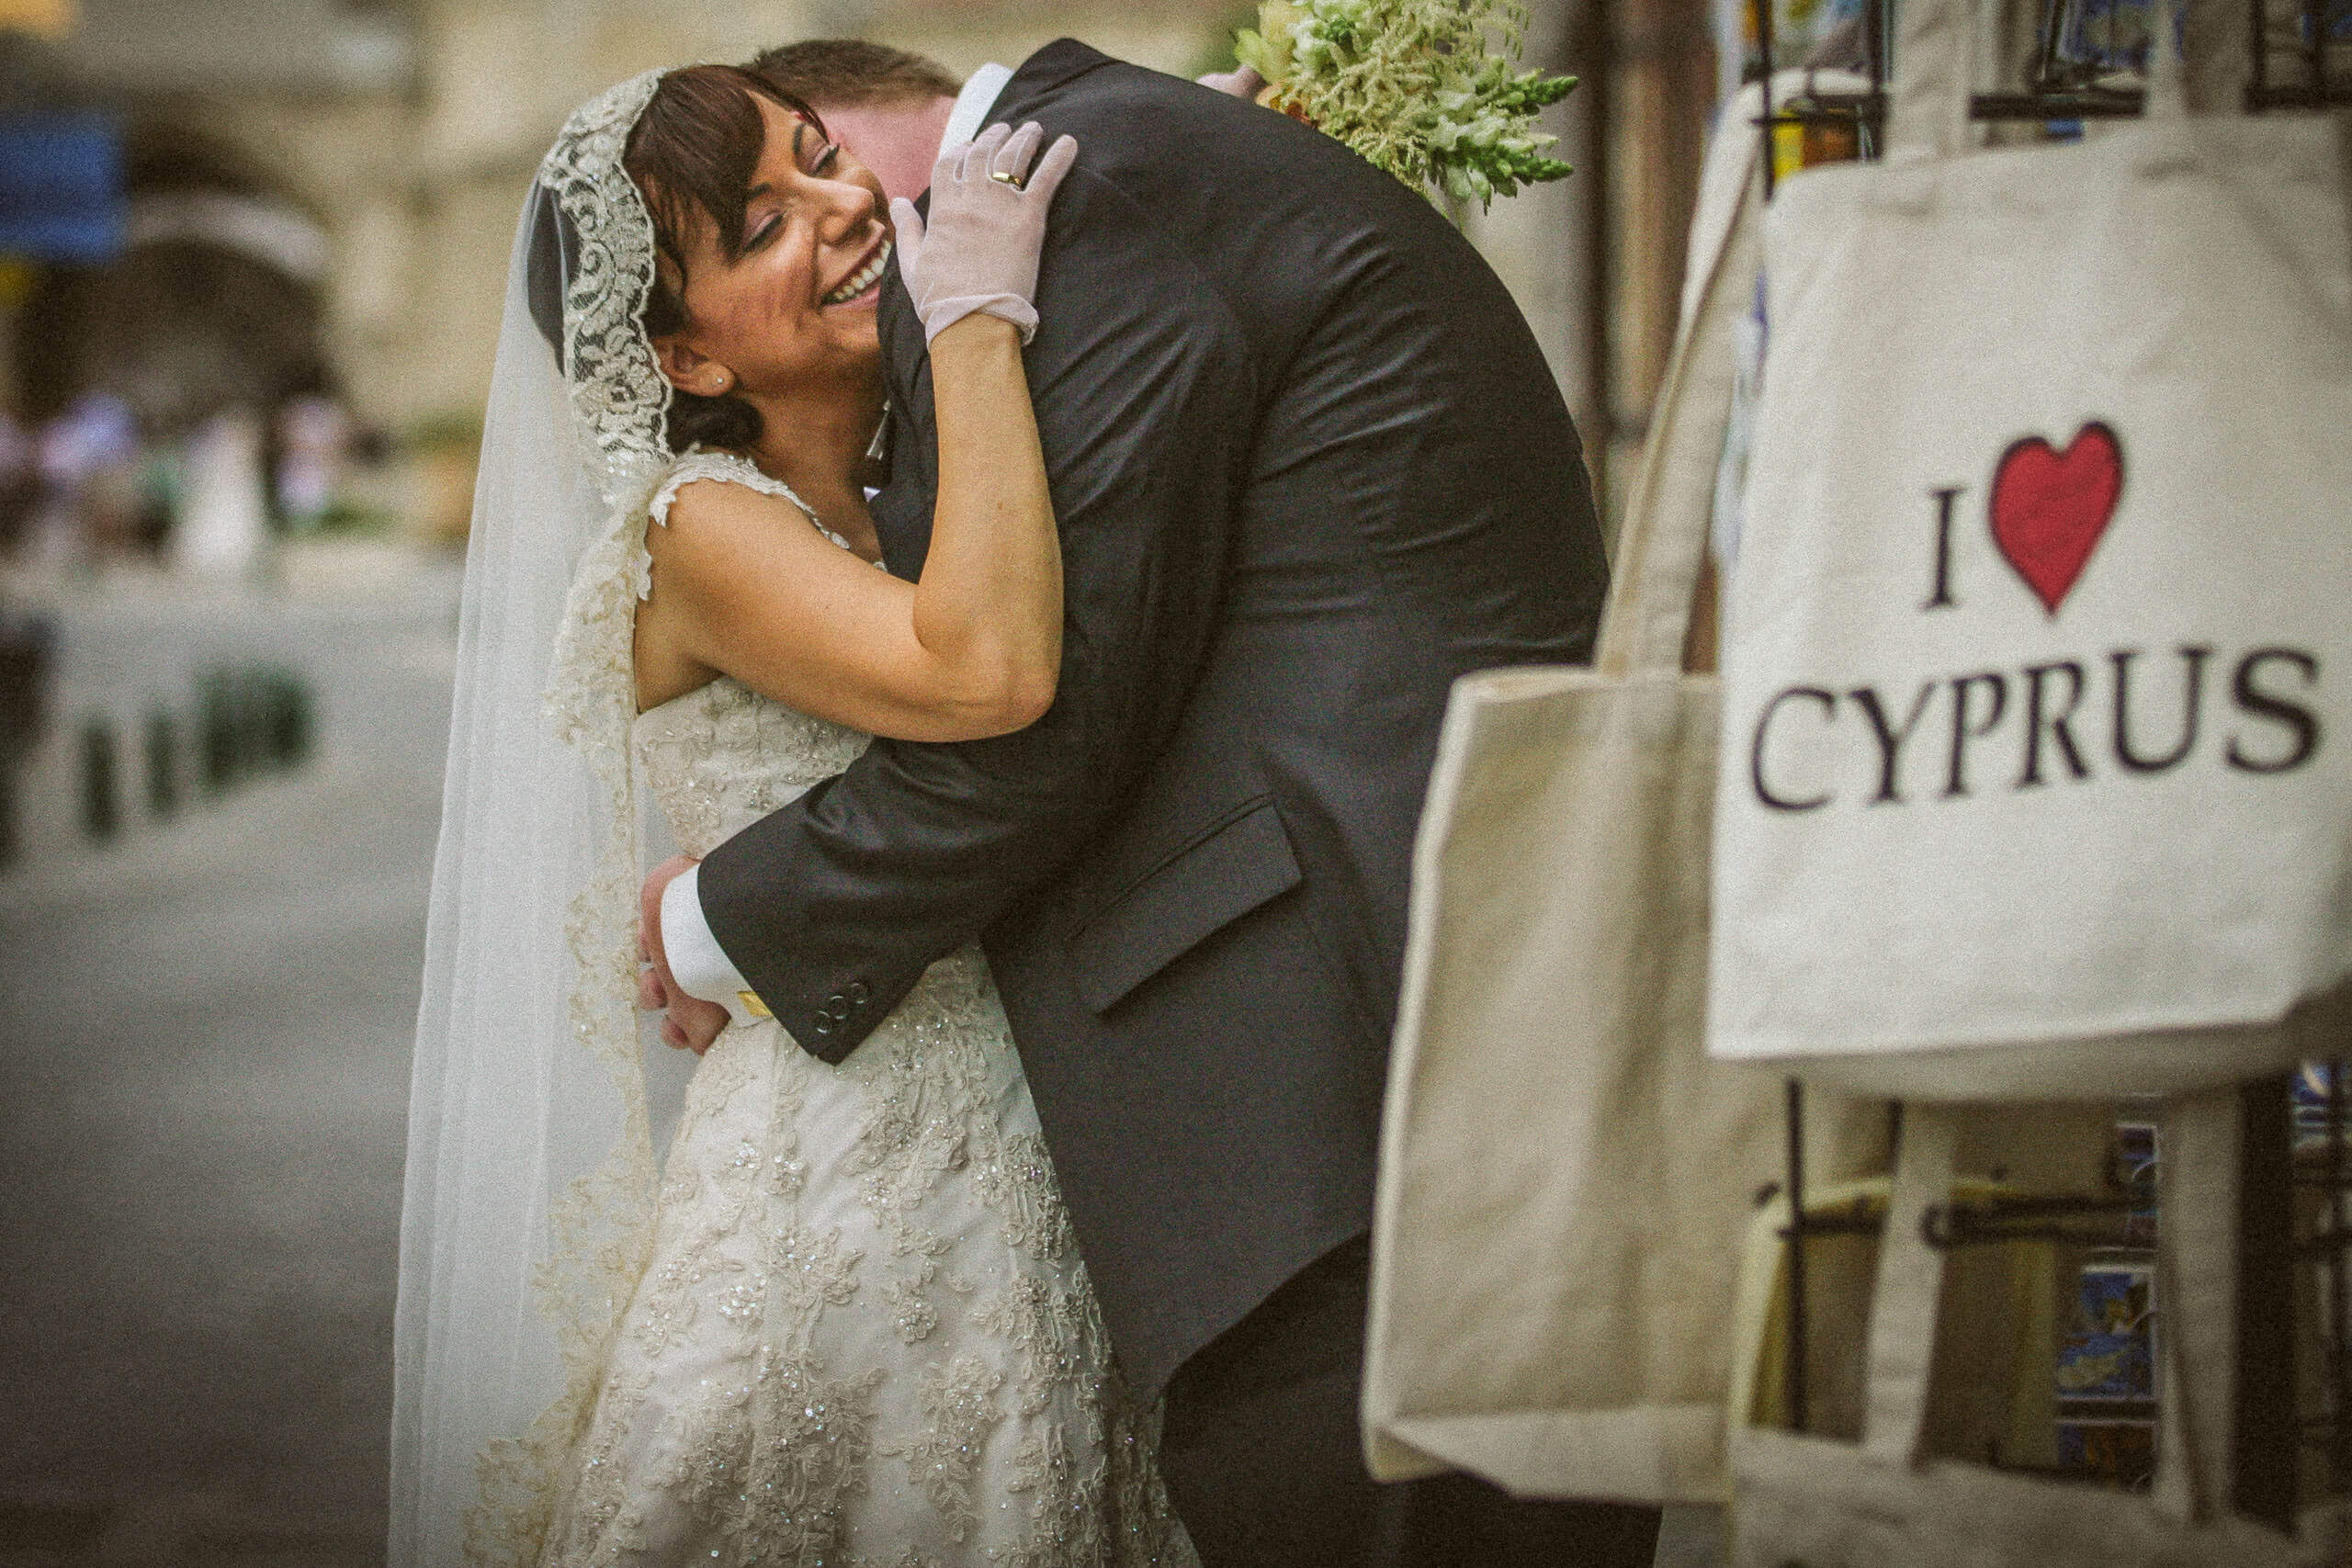 Bride and groom with I love Cyprus sign in Larnica. Best wedding destinations in Europe